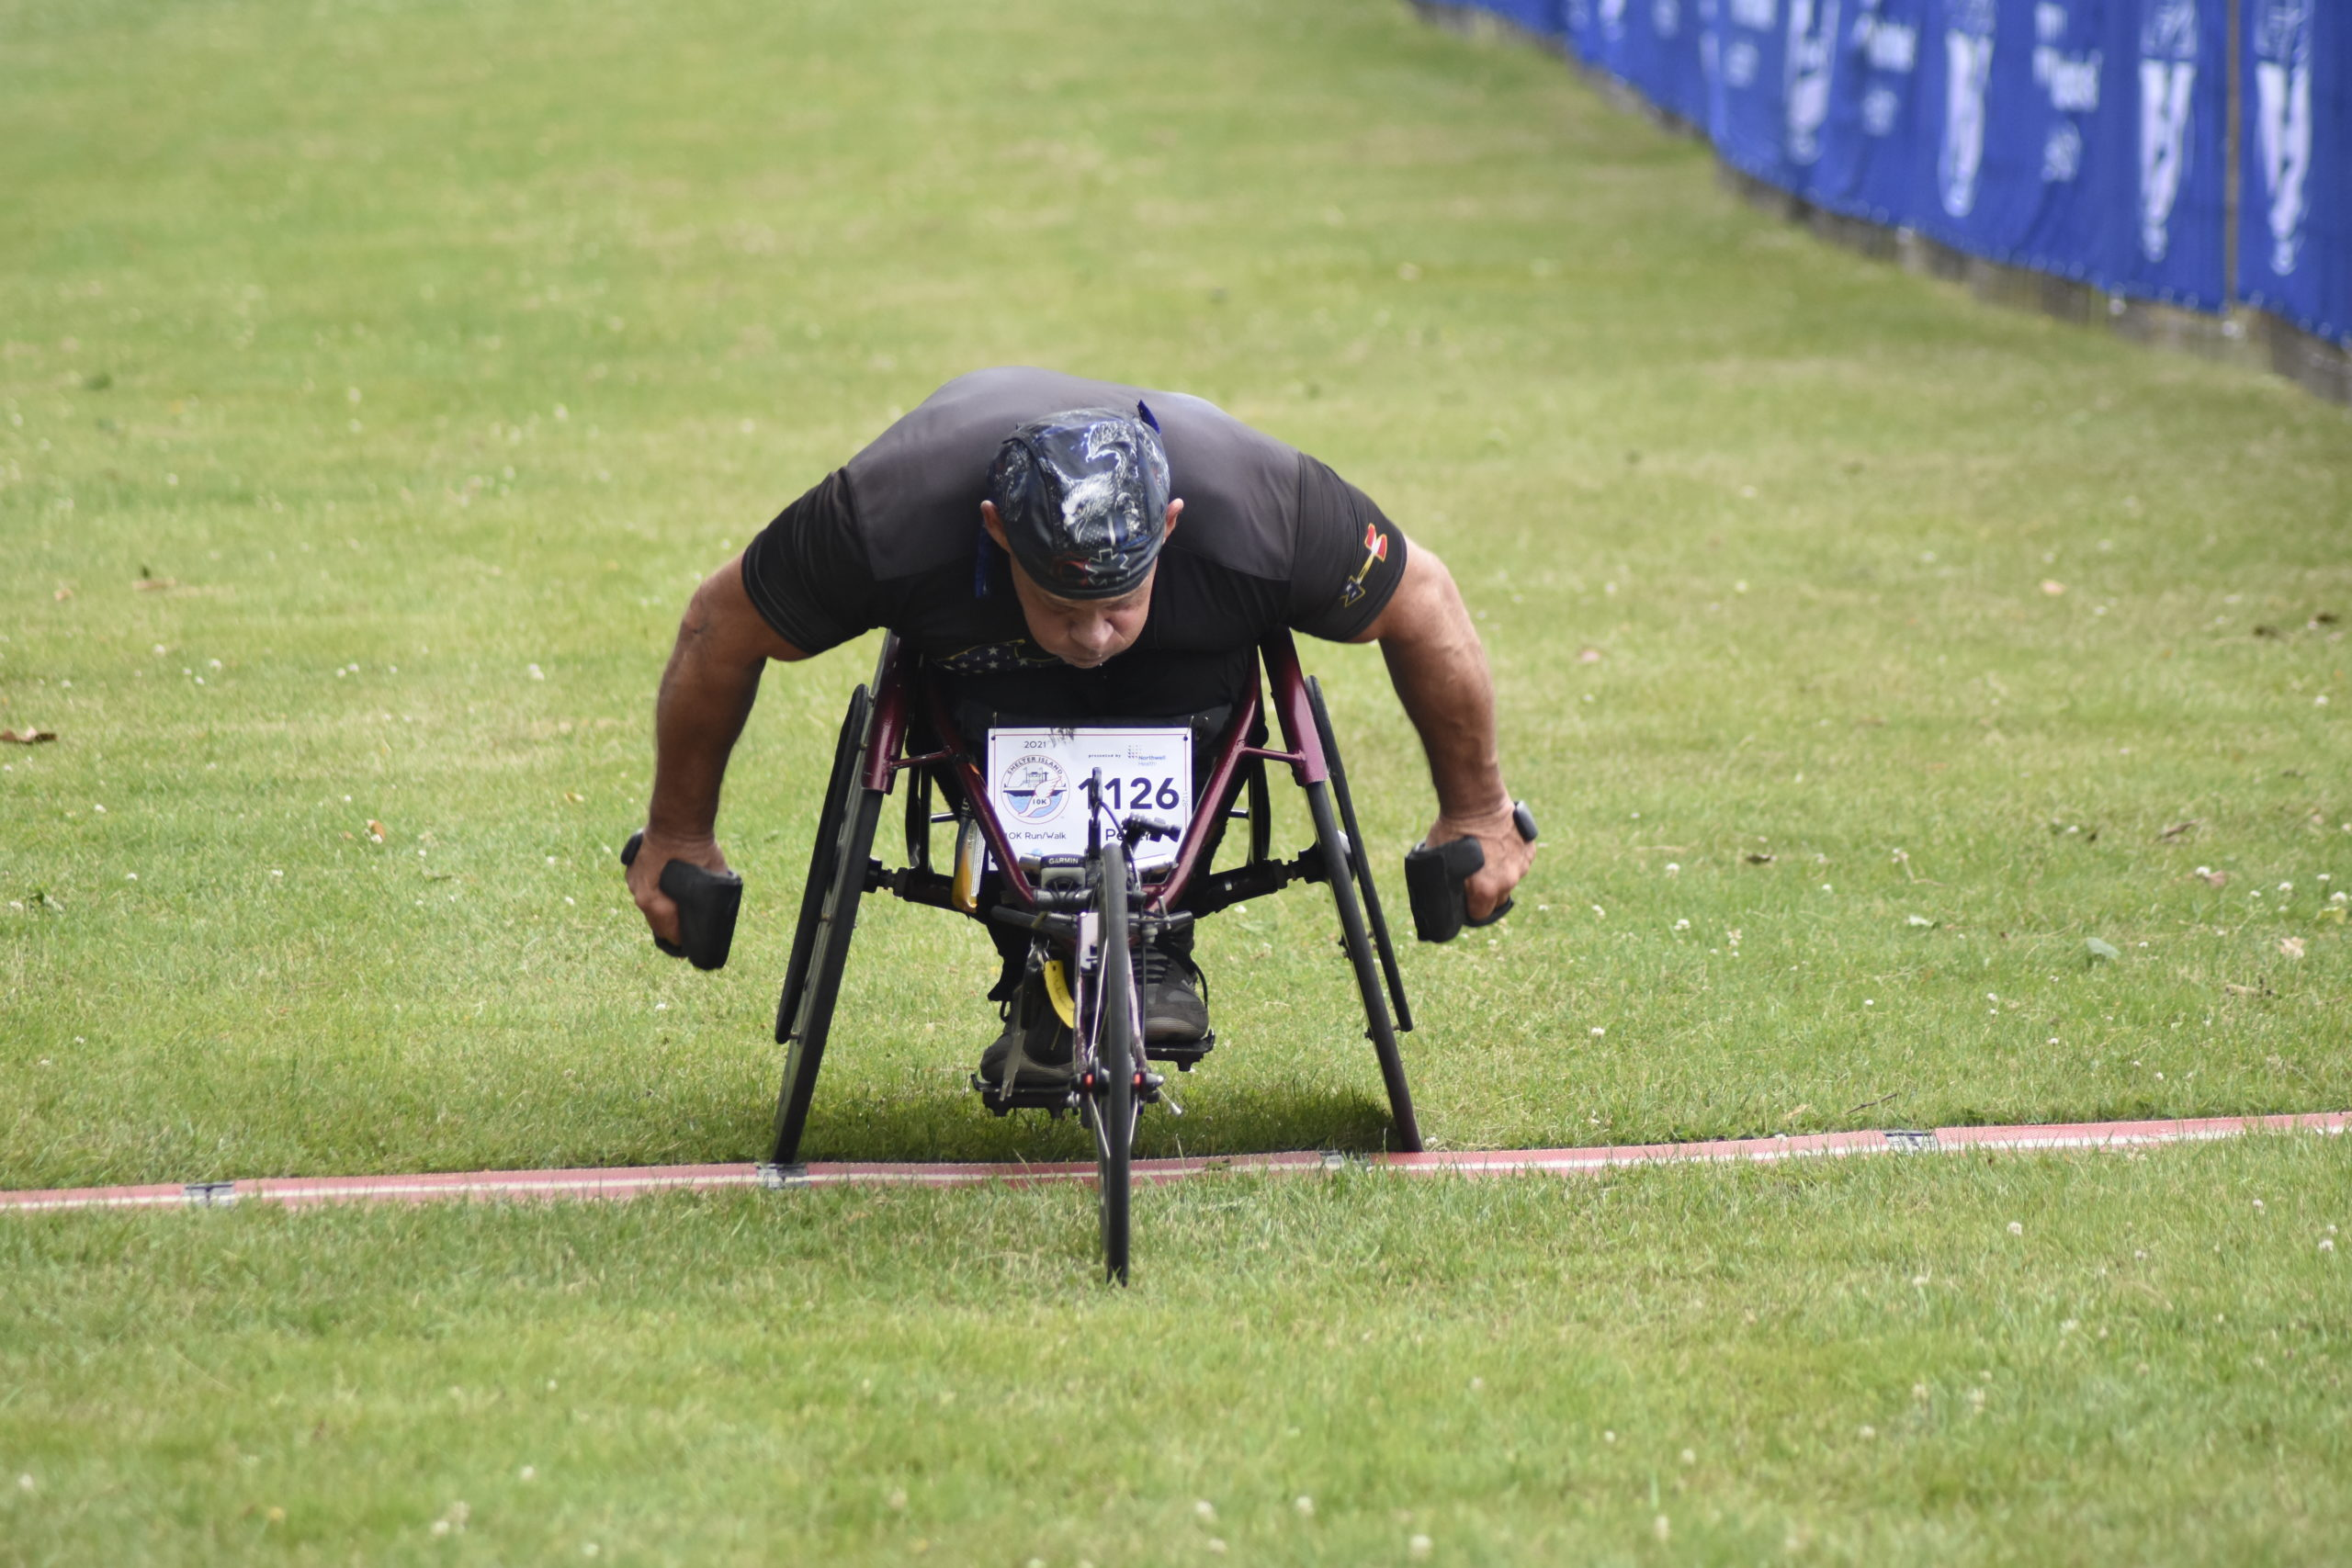 Peter Hawkins, 57, of Malverne was once again the champion of the wheelchair division.